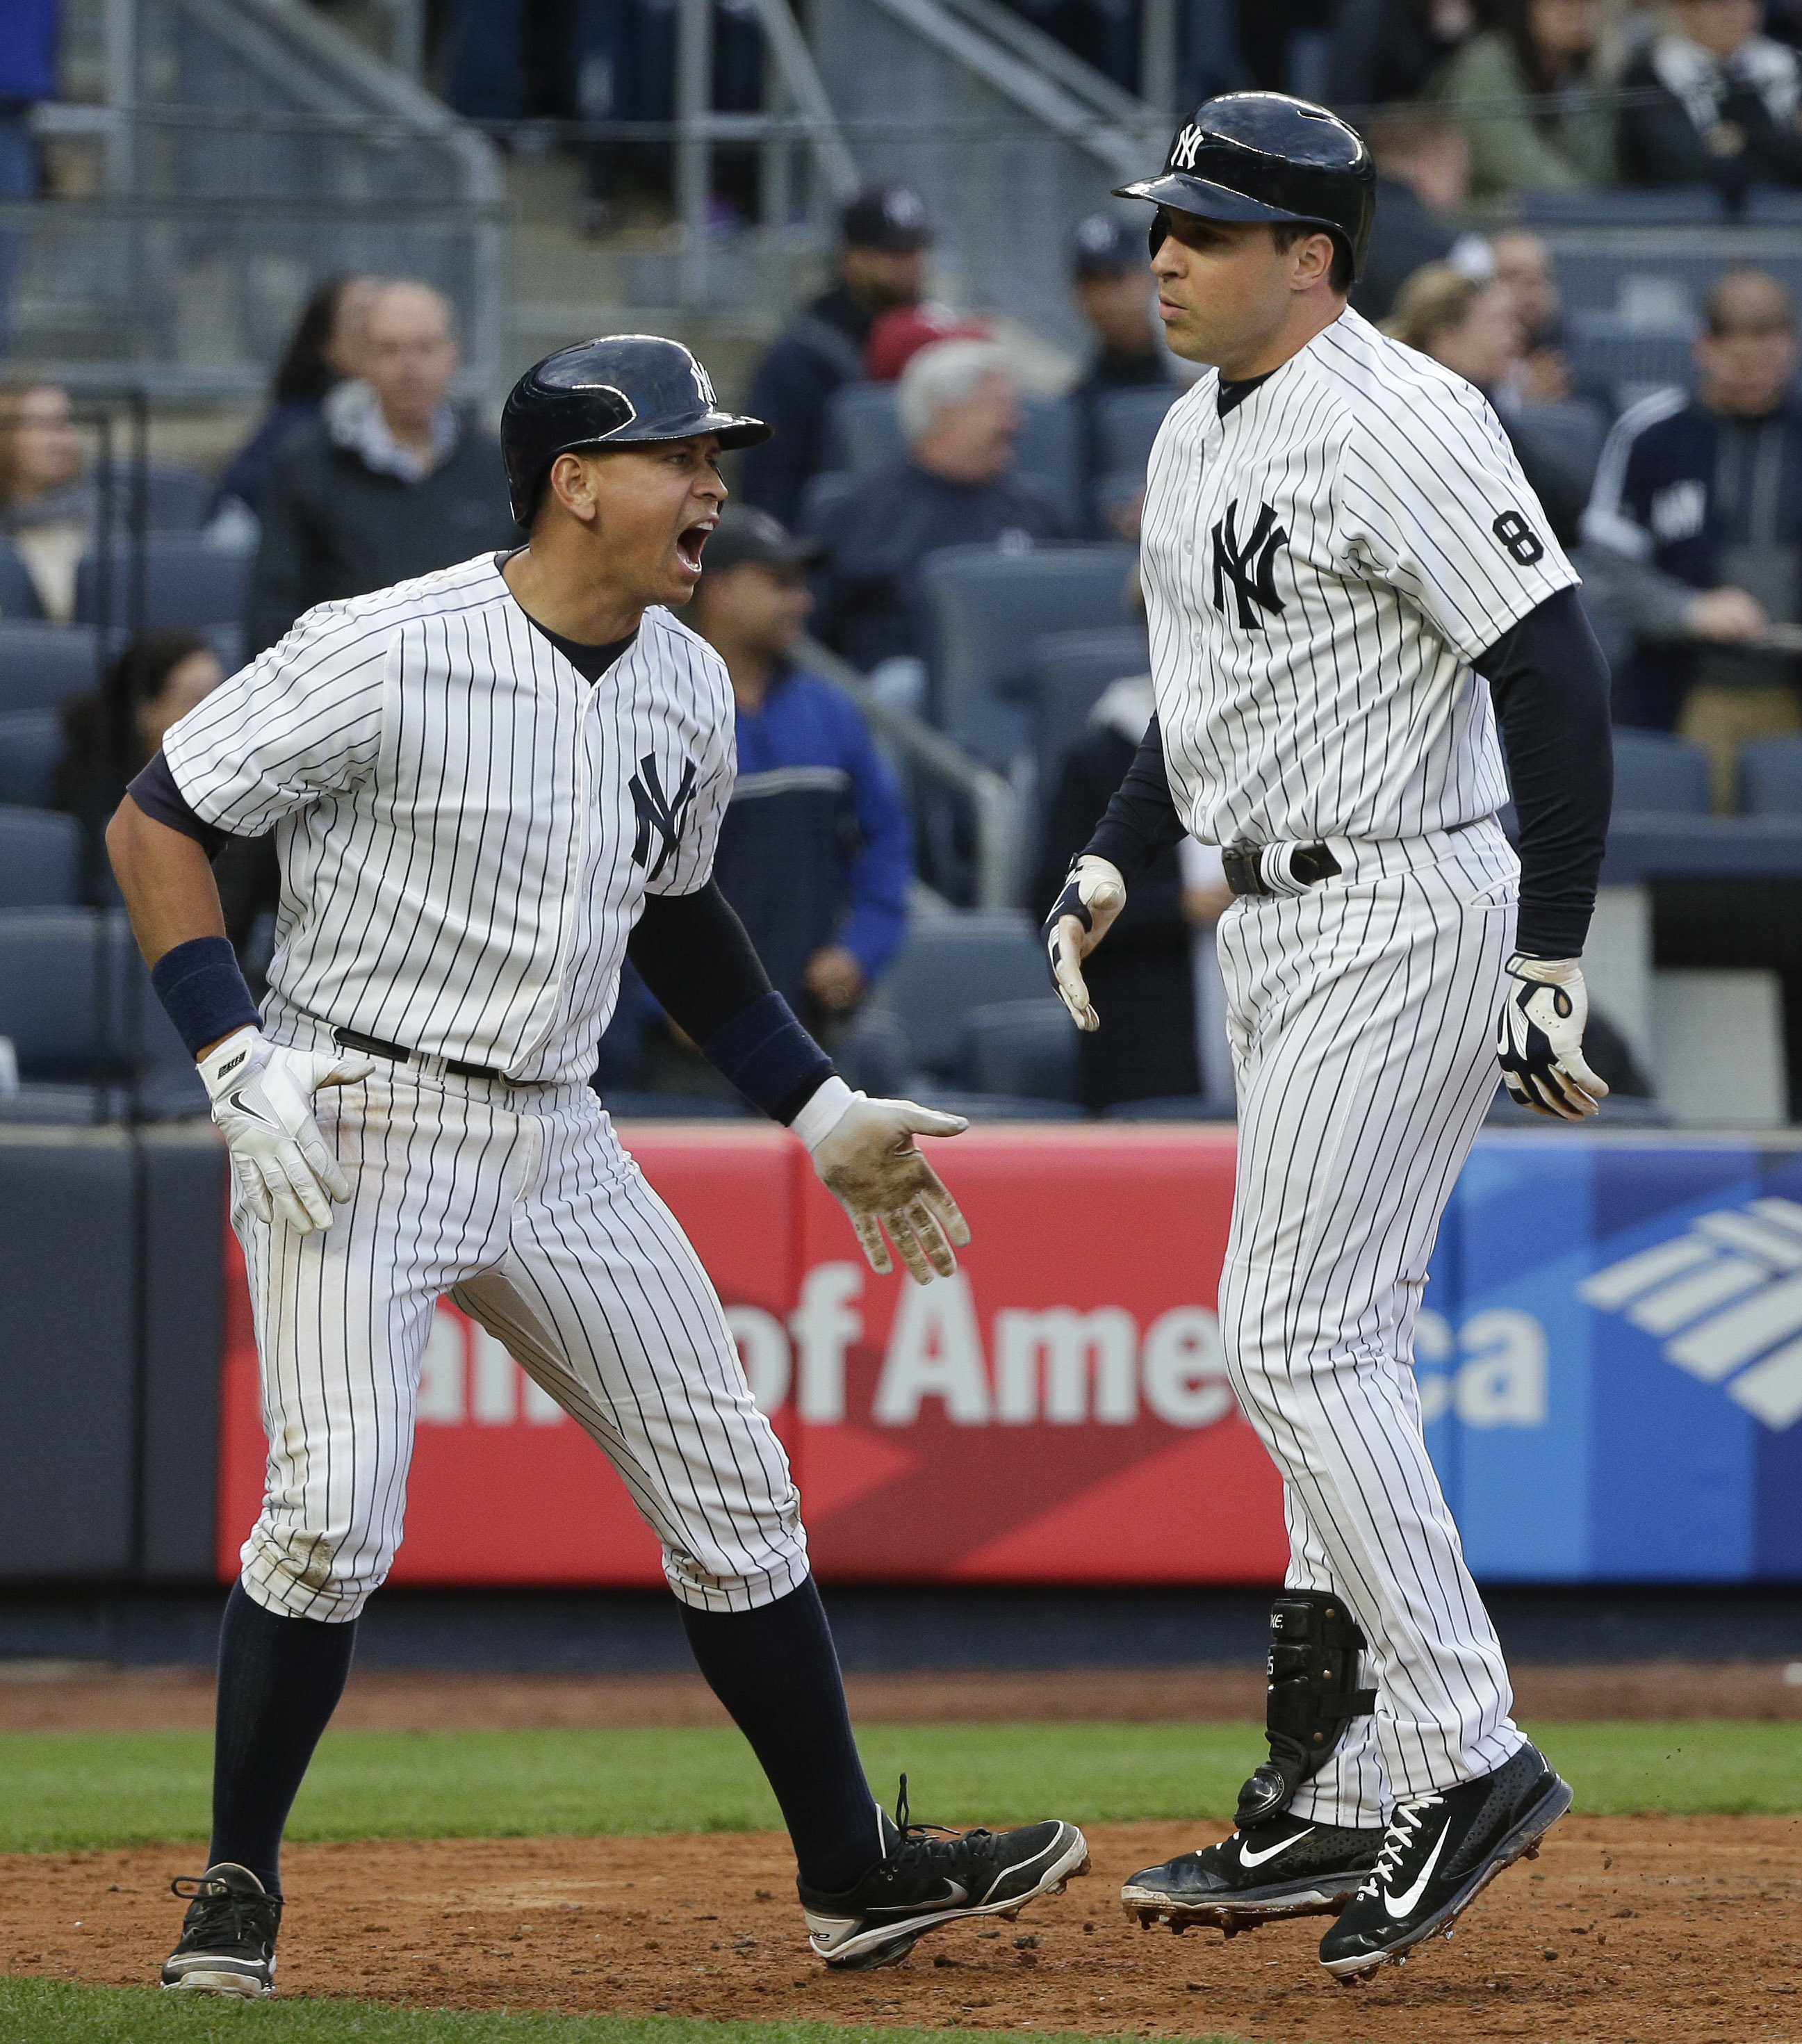 New York Yankees' Mark Teixeira, right, is greeted by Alex Rodriguez at the plate after hitting a three-run home run against the Houston Astros during the seventh inning of a baseball game Thursday, April 7, 2016, in New York. (AP Photo/Julie Jacobson)